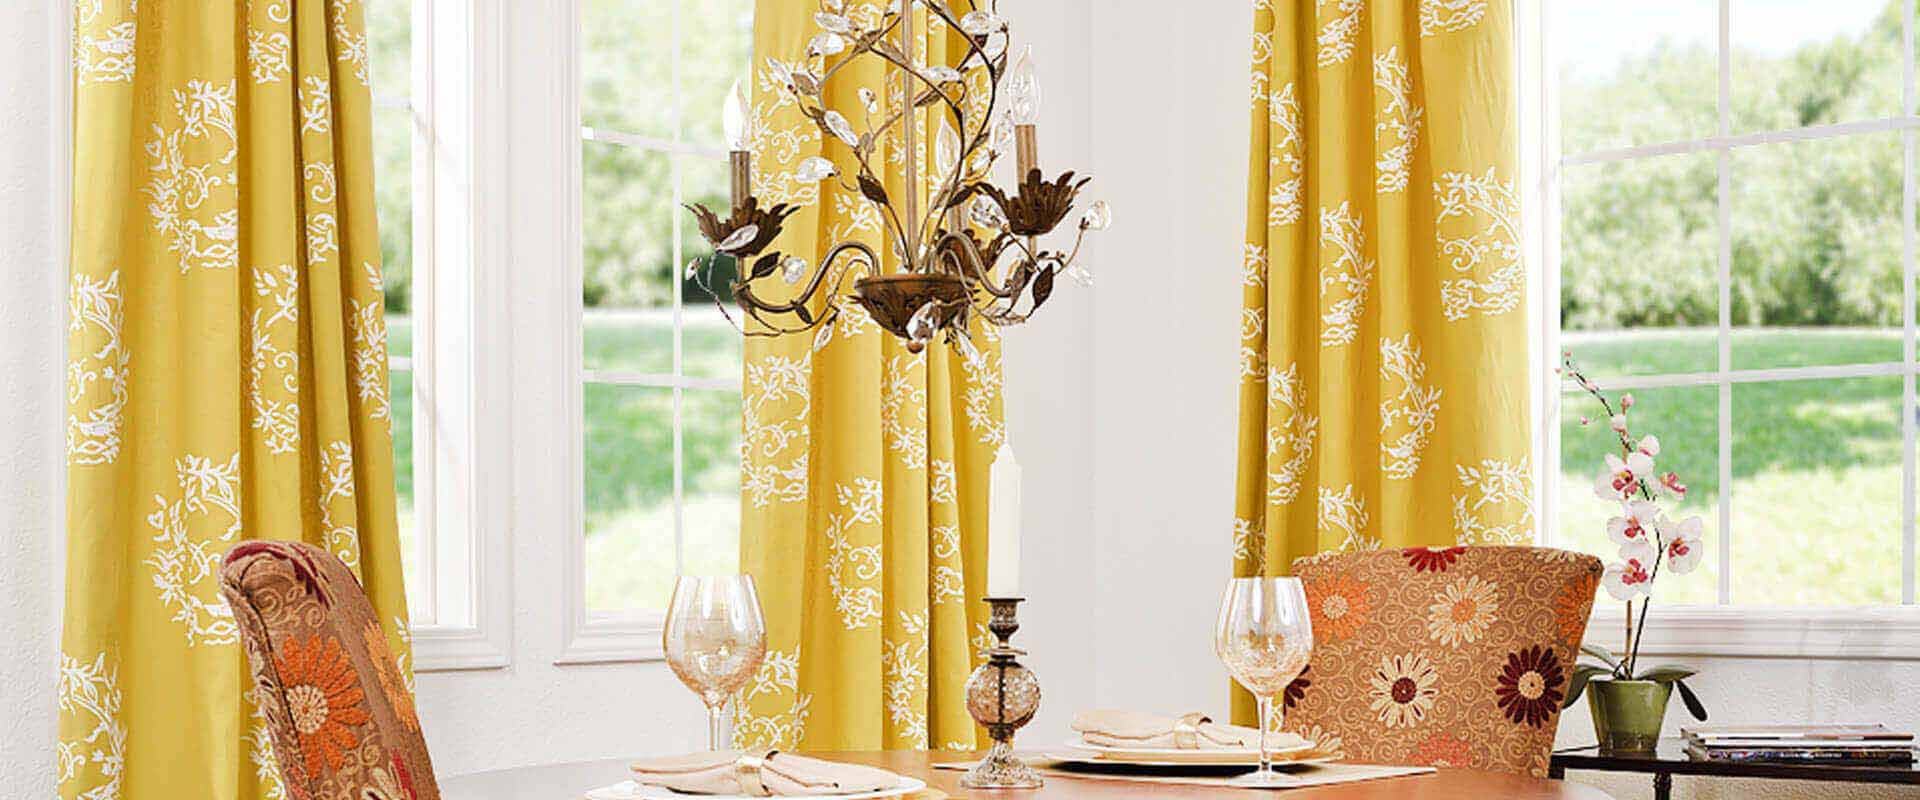 Curtains & Drapery Hardware